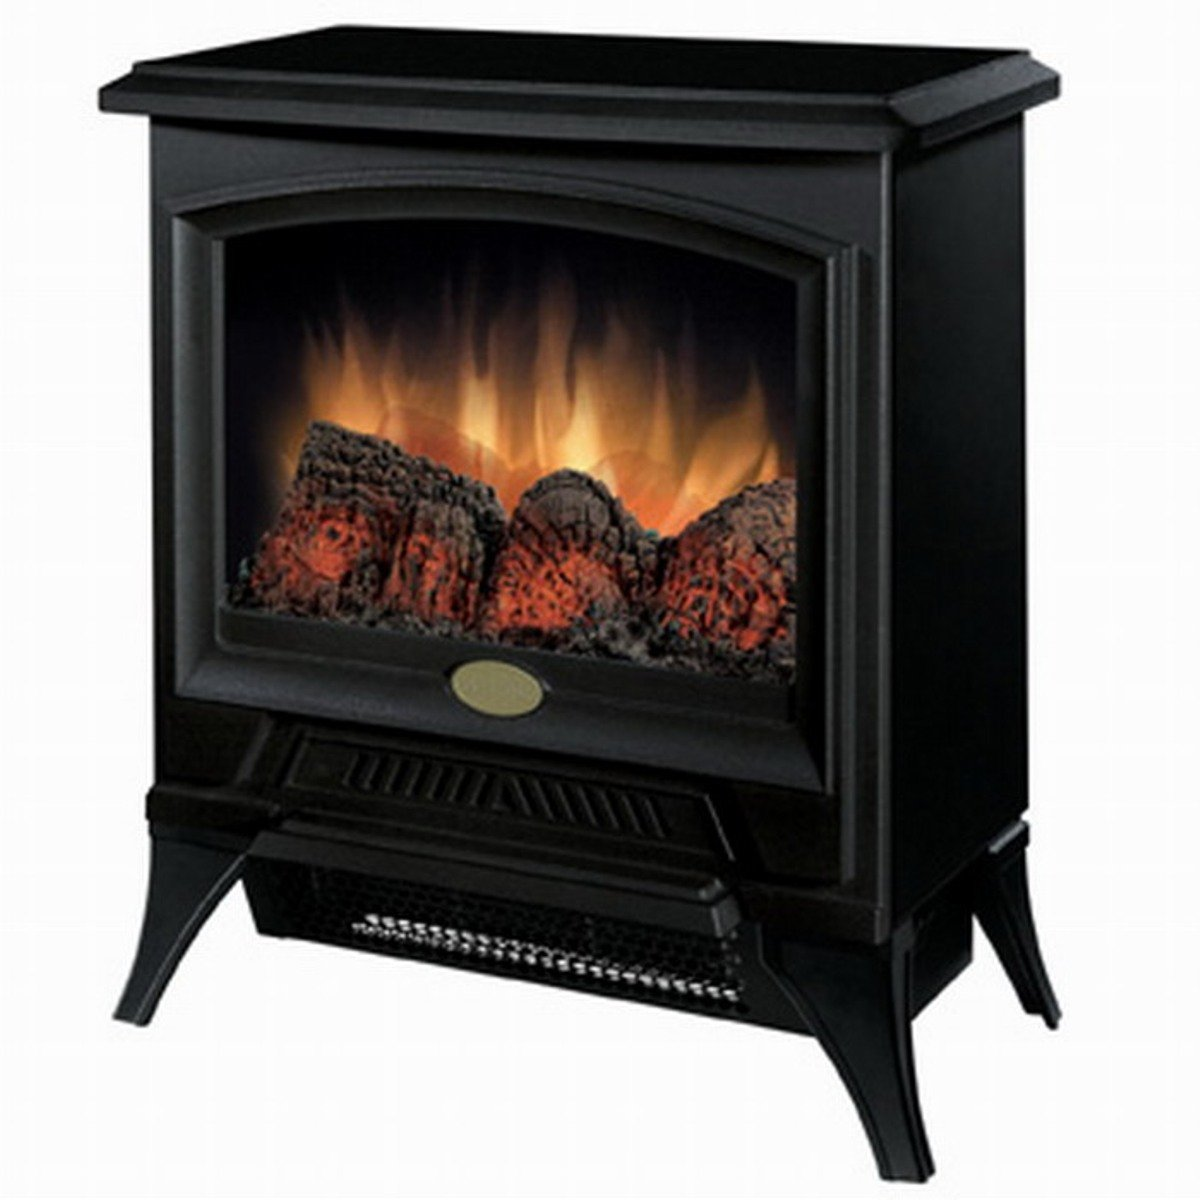 Dimplex CS-12056A Economical Compact Electric Stove